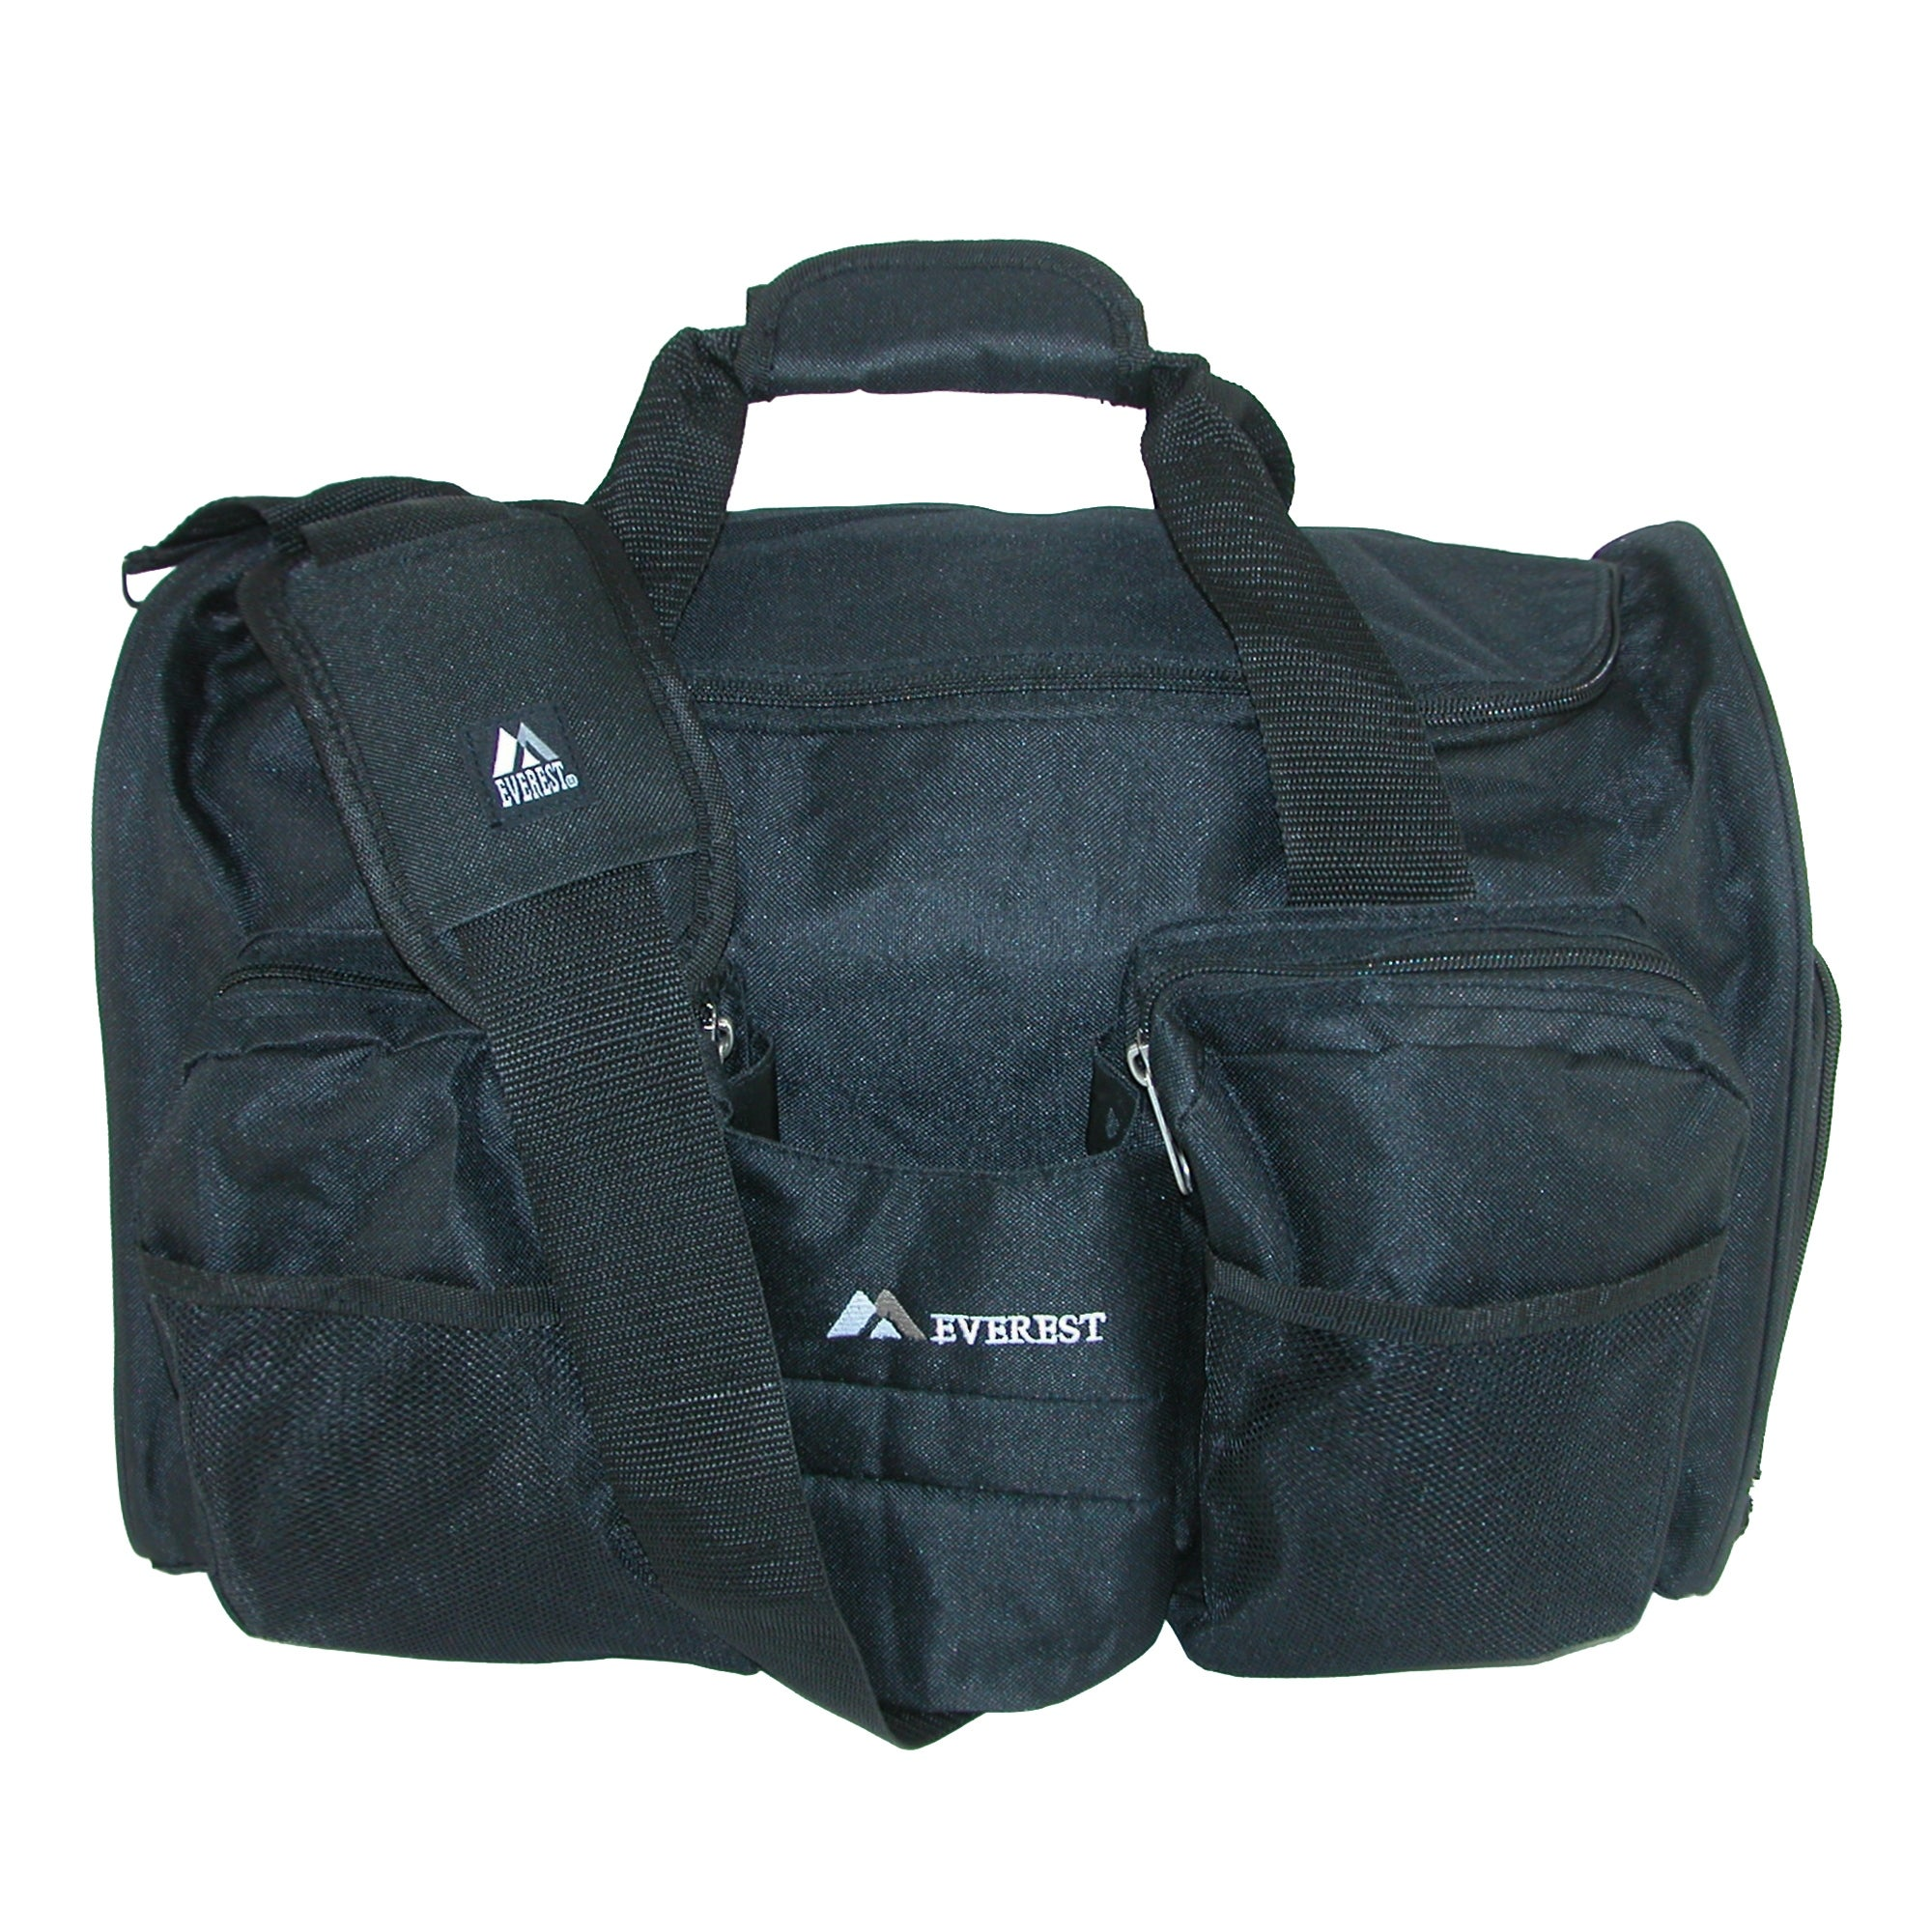 1a939a94ff Shop Everest Sports Duffel Gym Bag with Wet Pocket - one size - Free  Shipping On Orders Over  45 - Overstock - 20457810